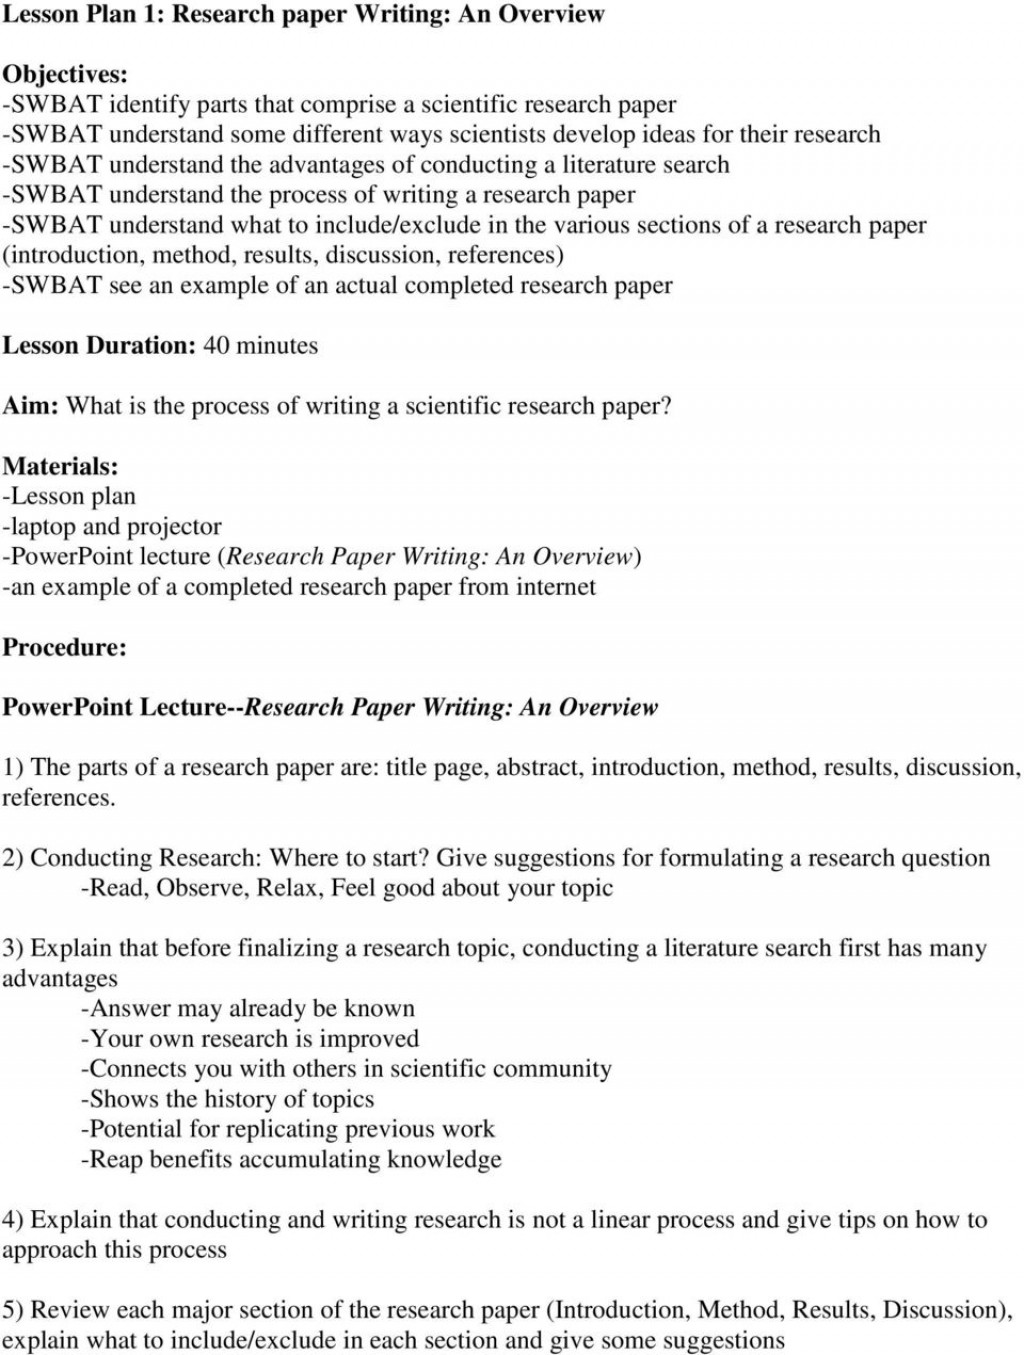 006 Page 1 Research Paper How To Write Results And Discussion Surprising In The Section Of A Quantitative Large